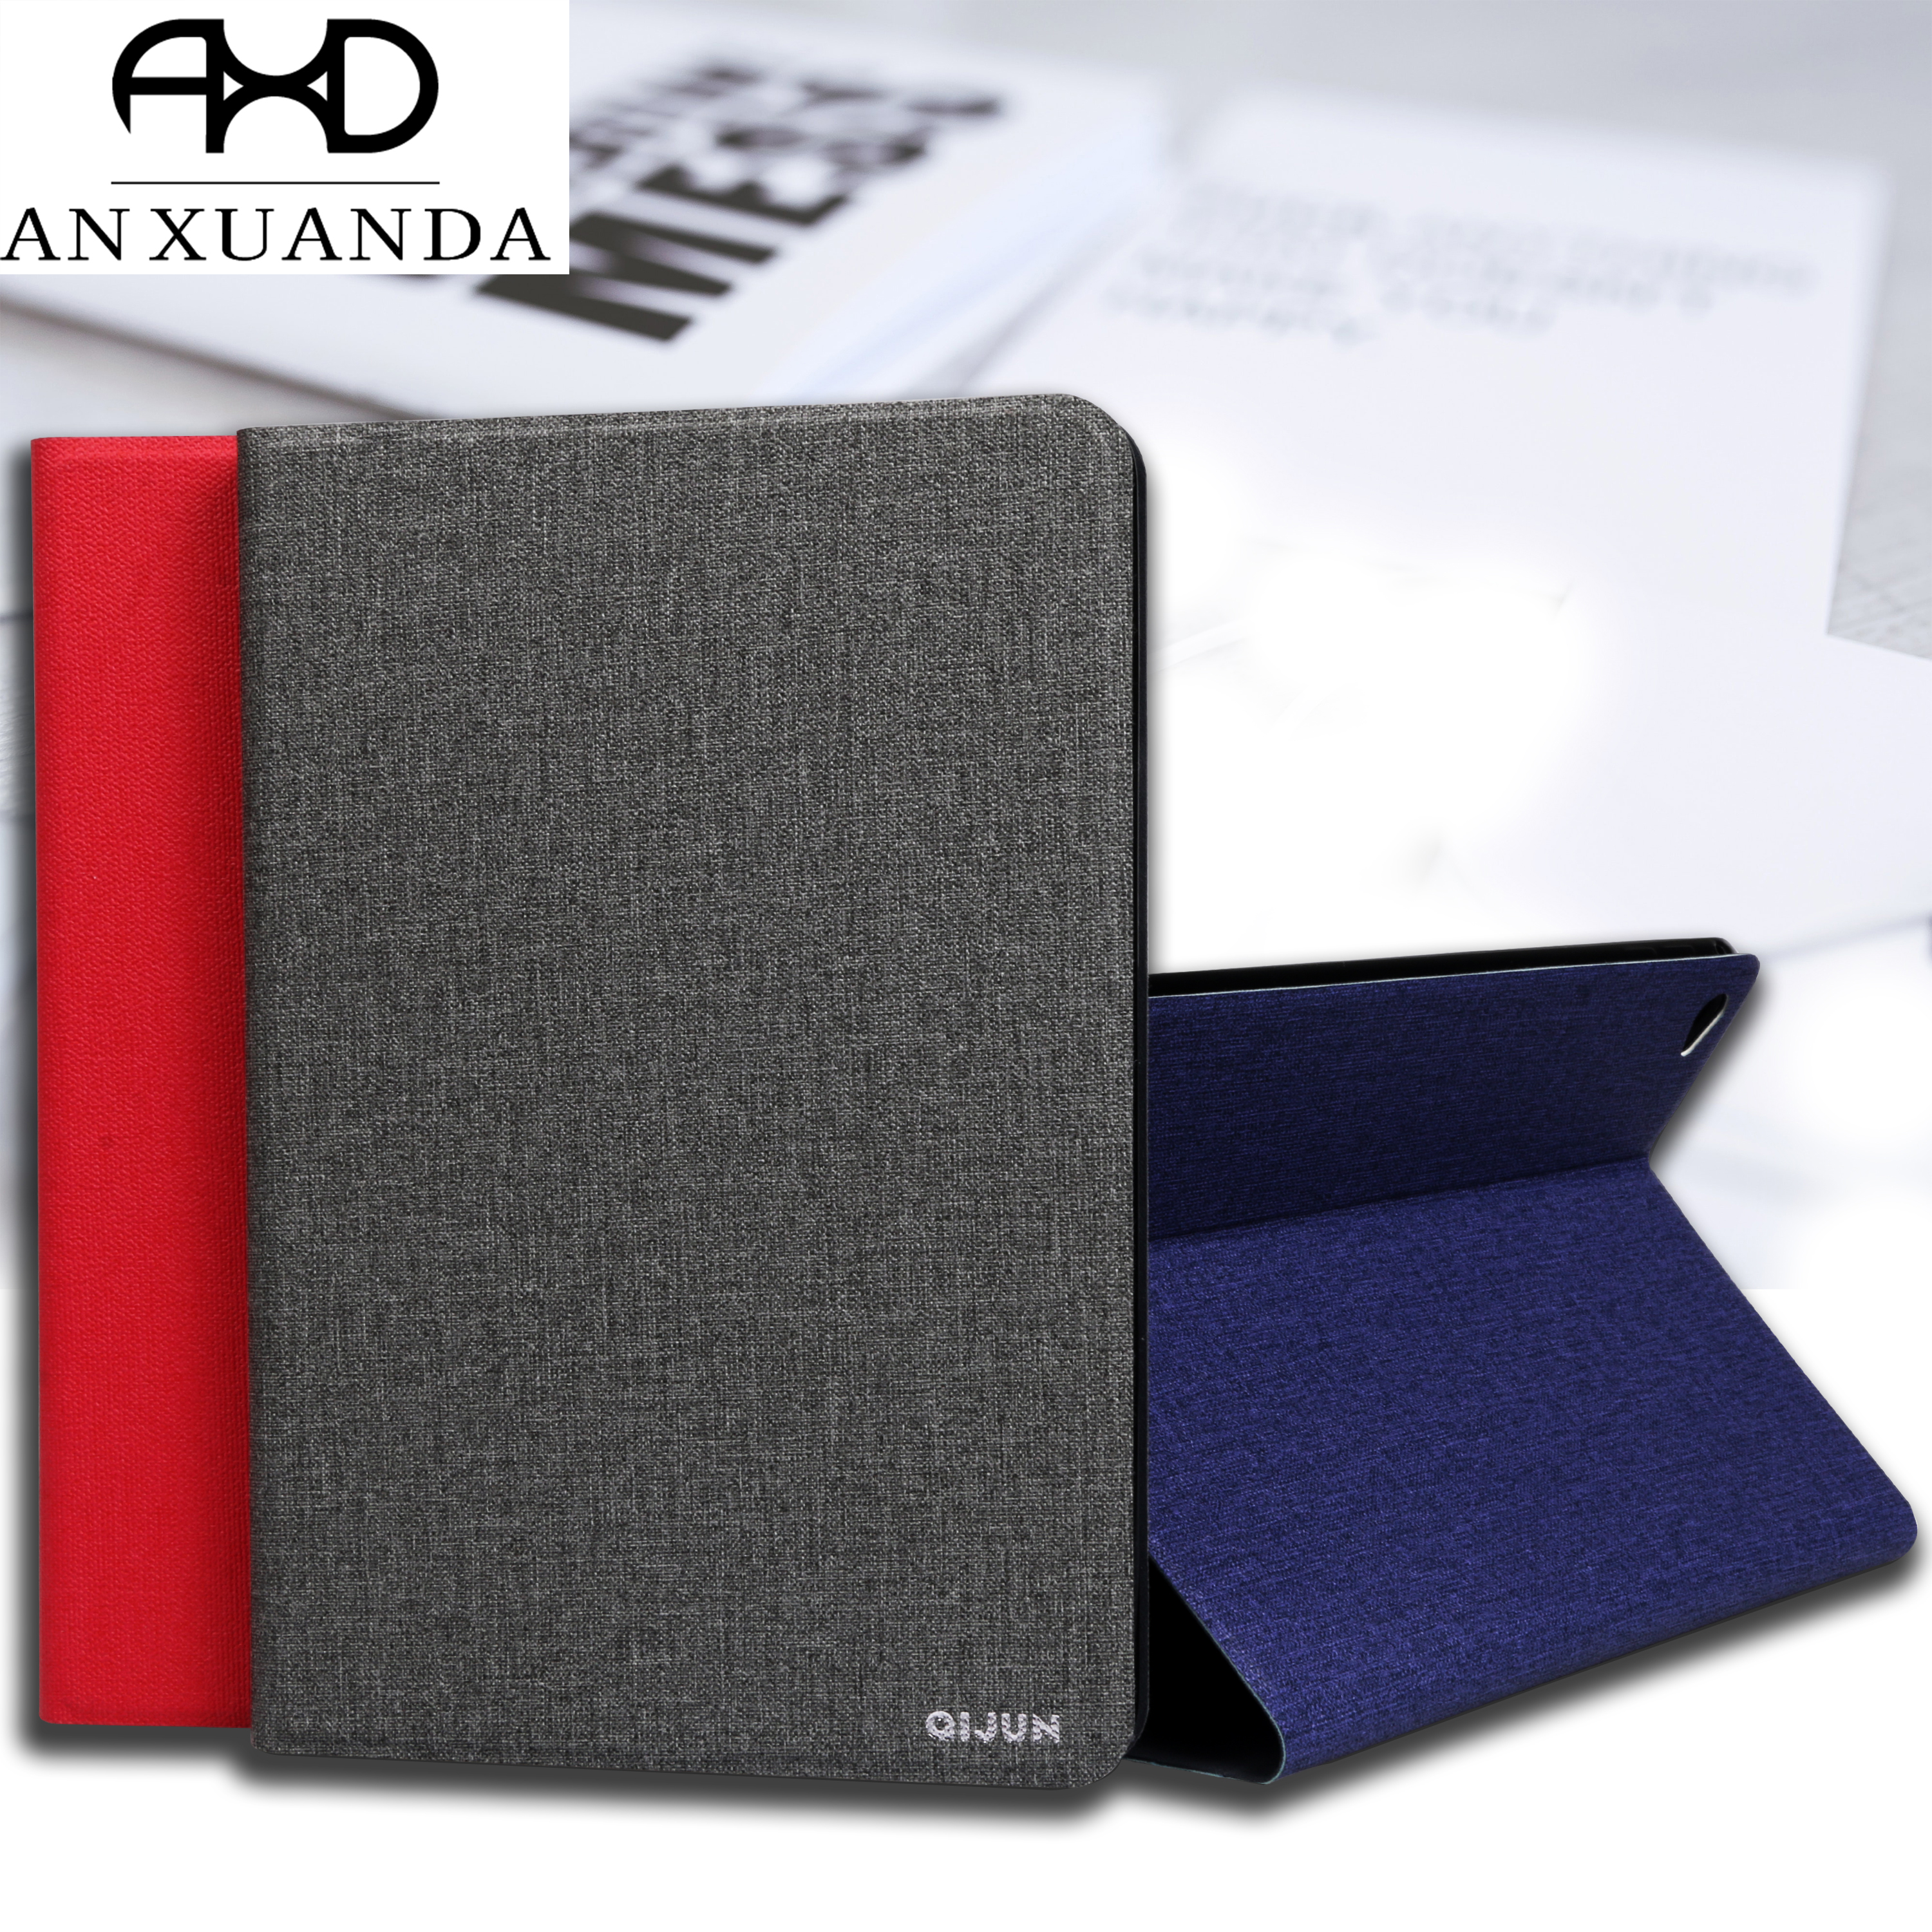 For Xiaomi Mi Pad Mipad 2 3 mipad2 mipad3 7 9 inch QIJUN Tablet Case for MiPad 2 3 Fundas Slim Flip Cover Soft Protective Shell in Tablets e Books Case from Computer Office